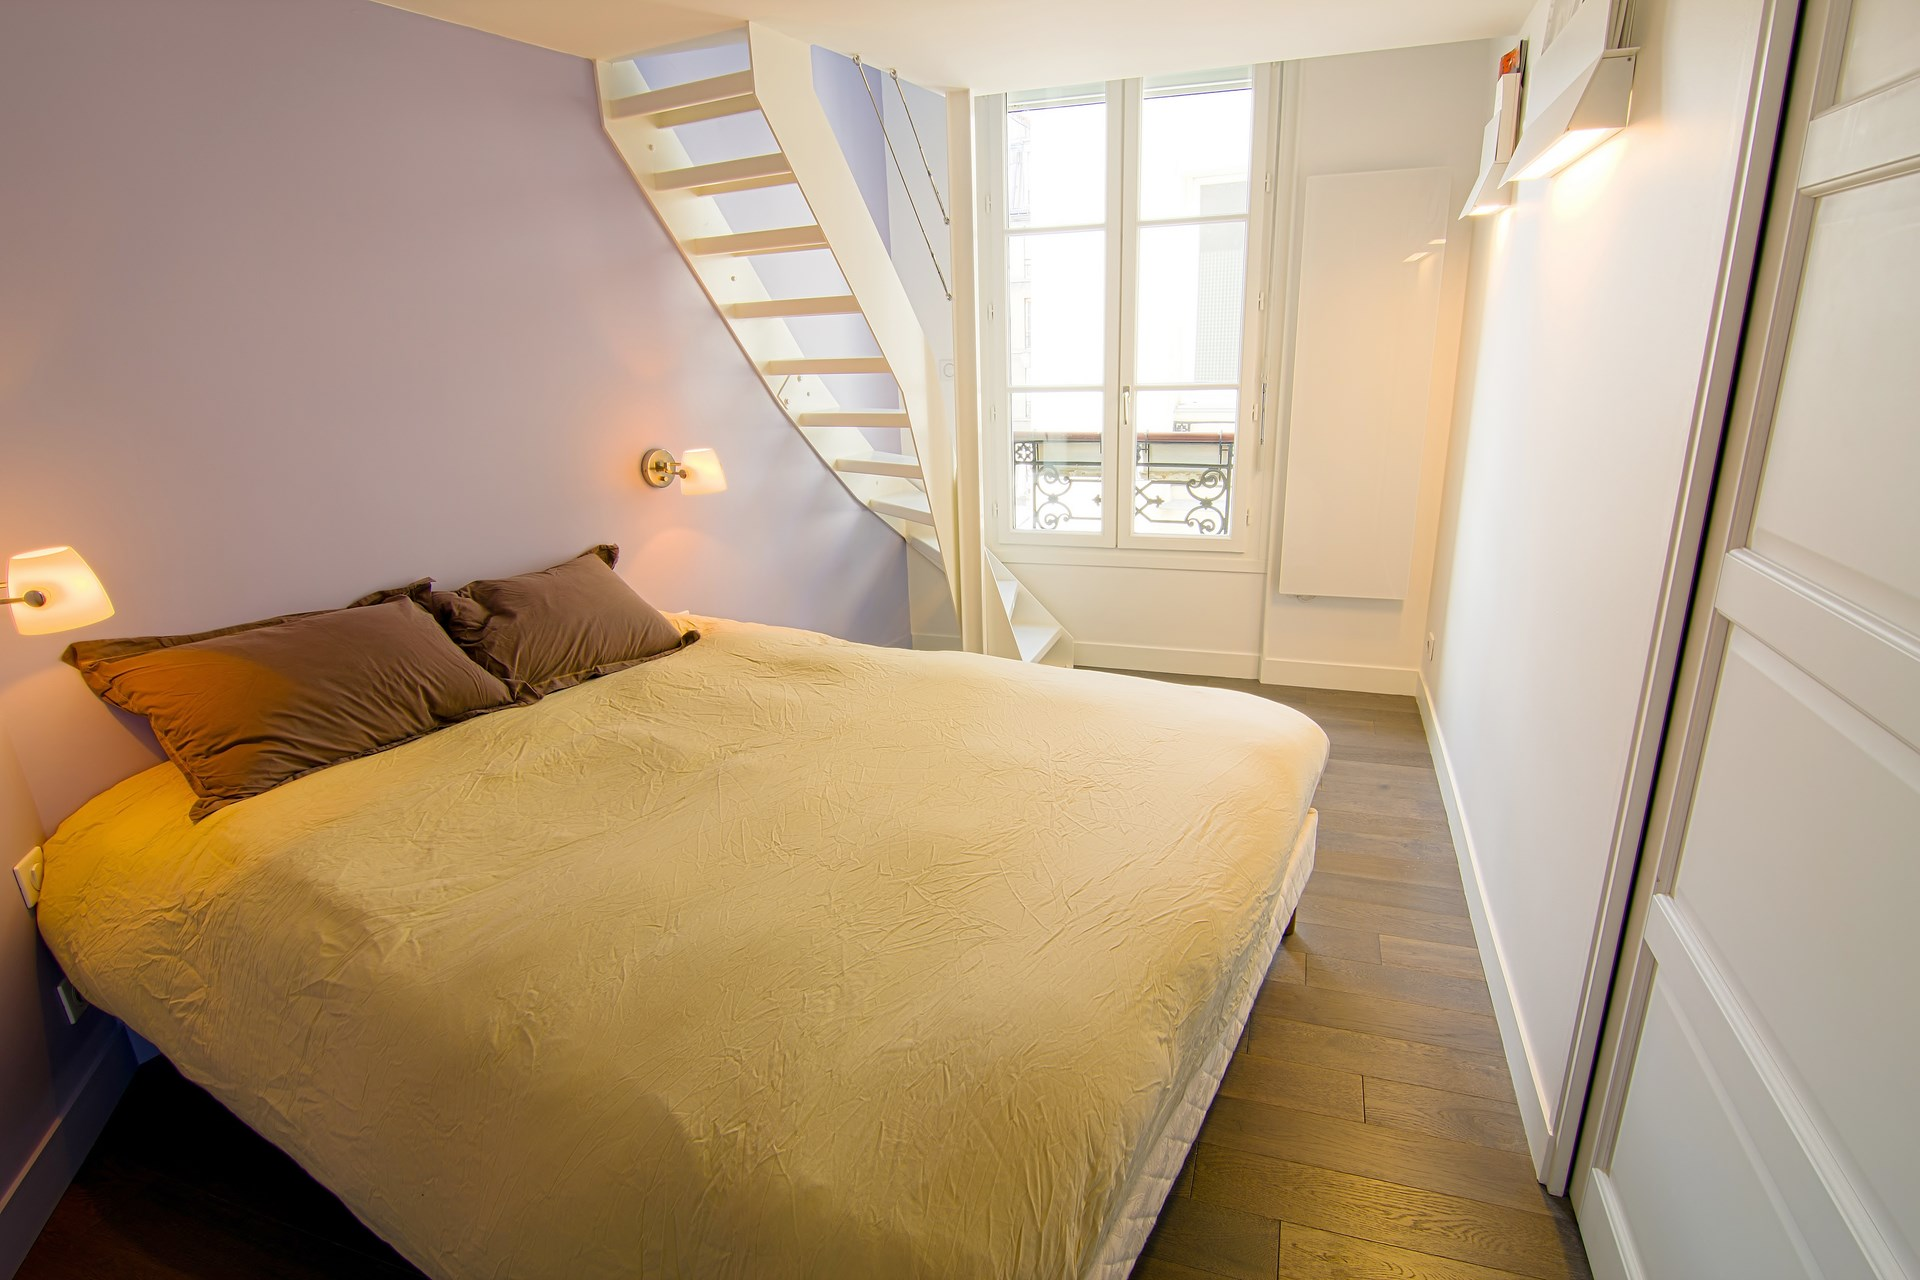 Amnagement appartement sous combles baign de lumire paris